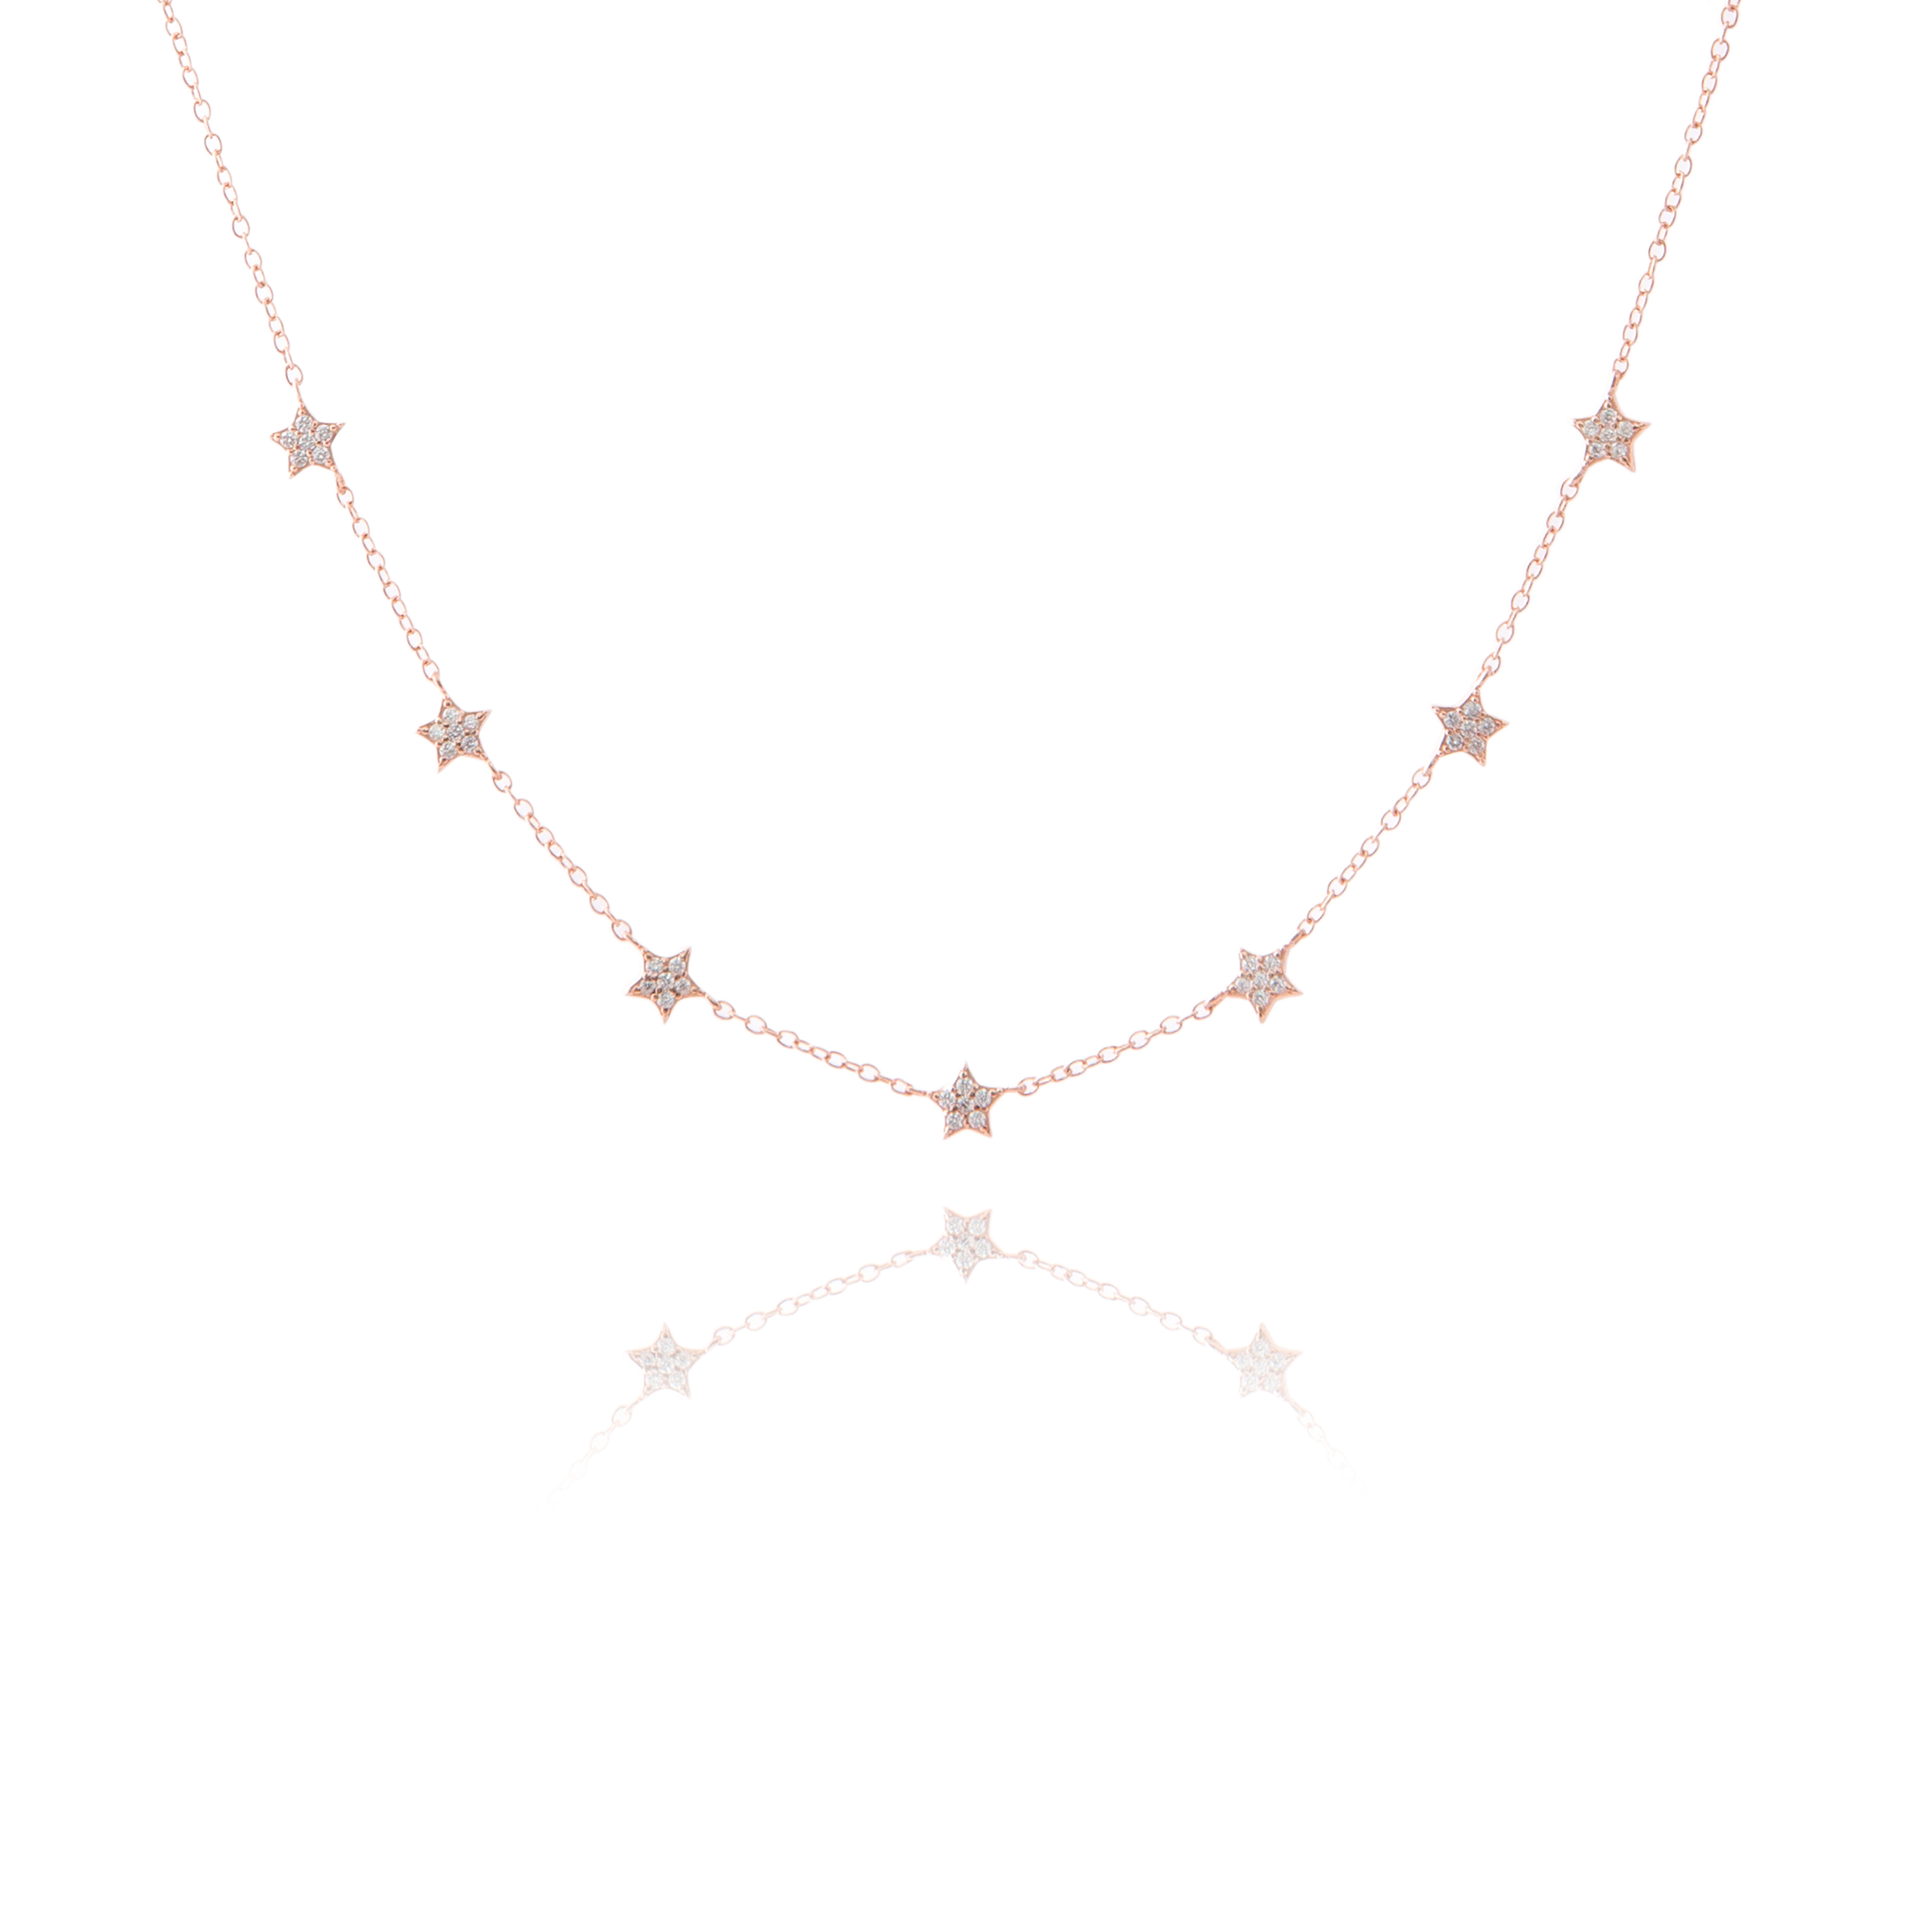 27839f9a3c3be Choker Necklace Lots of Little Shiny Stars Rose Gold - The Makery ...